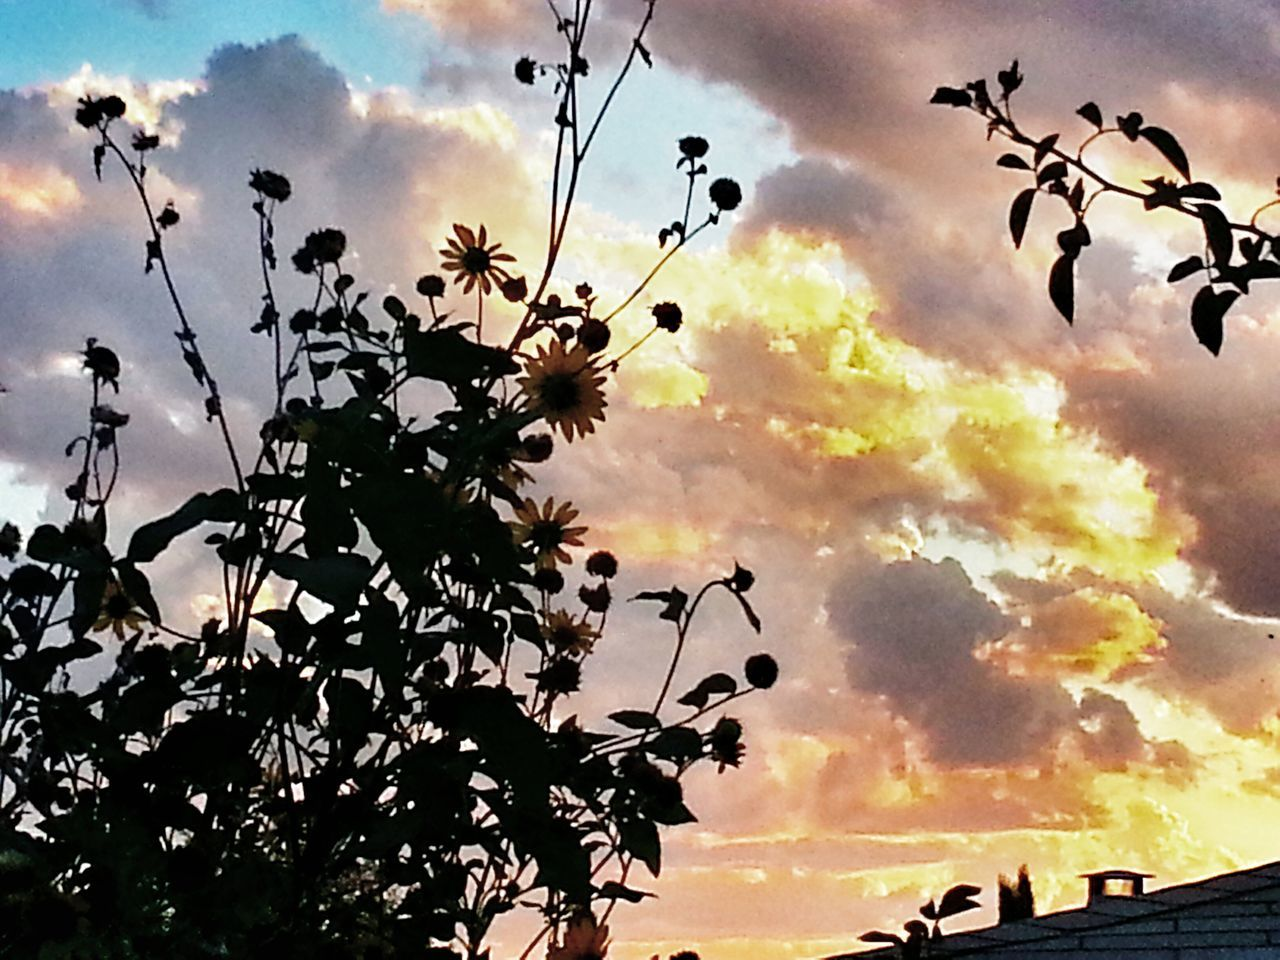 sky, sunset, nature, beauty in nature, silhouette, tree, growth, cloud - sky, outdoors, no people, low angle view, branch, day